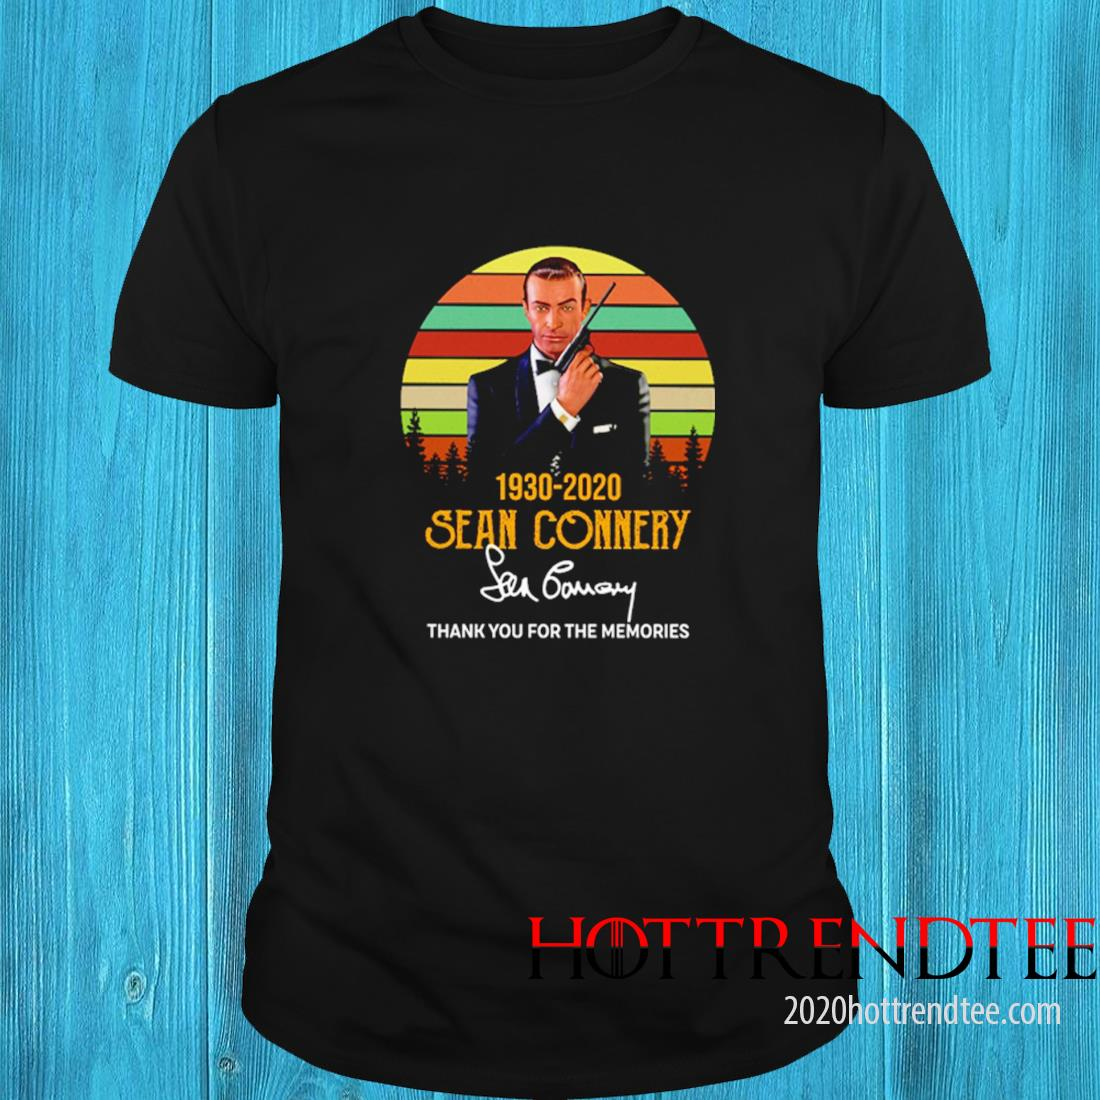 007 Sean Connery 1930 2020 Signatures Thanks For The Memories Vintage Shirt